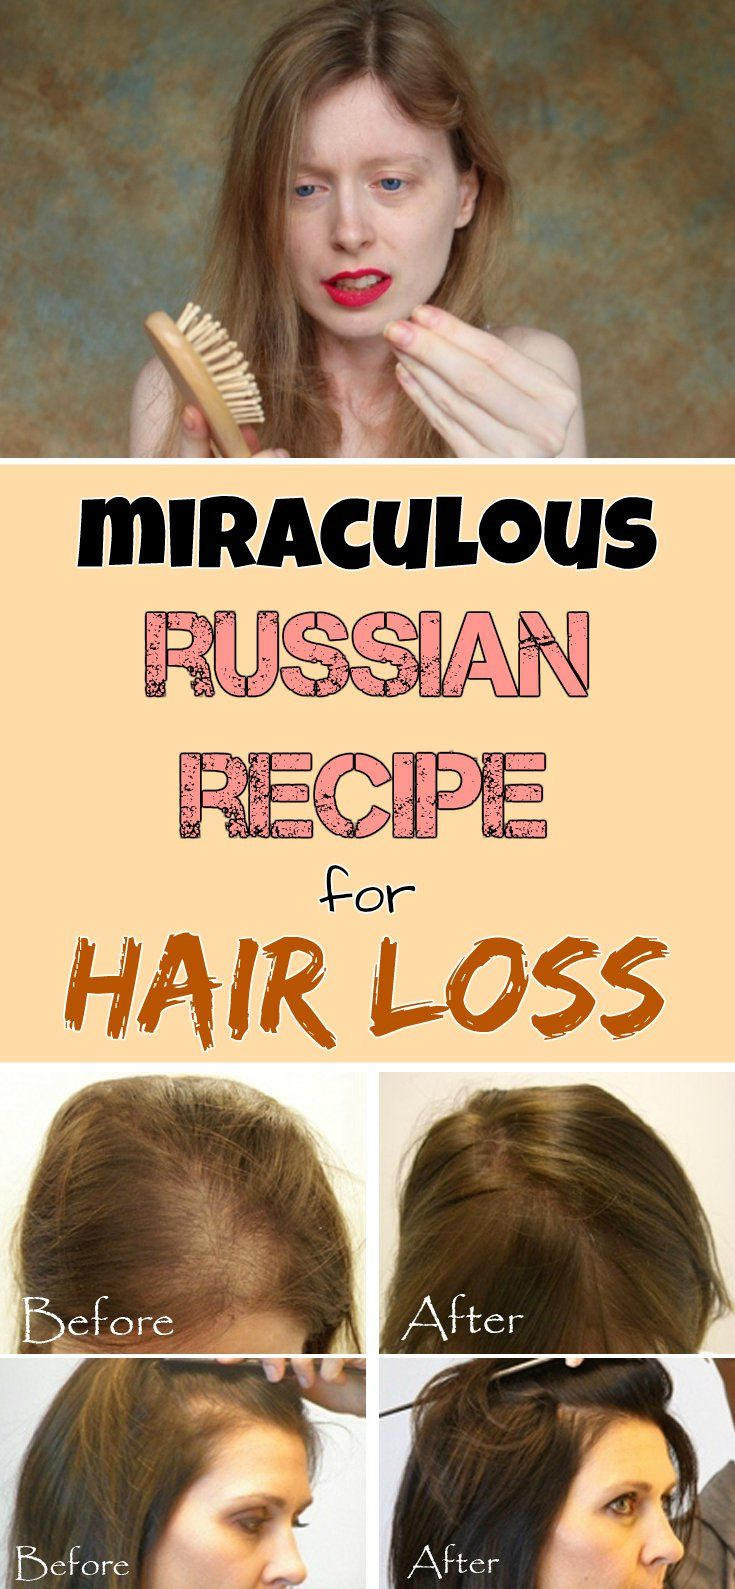 Miraculous Russian recipe for hair loss - BeautyTotal.org